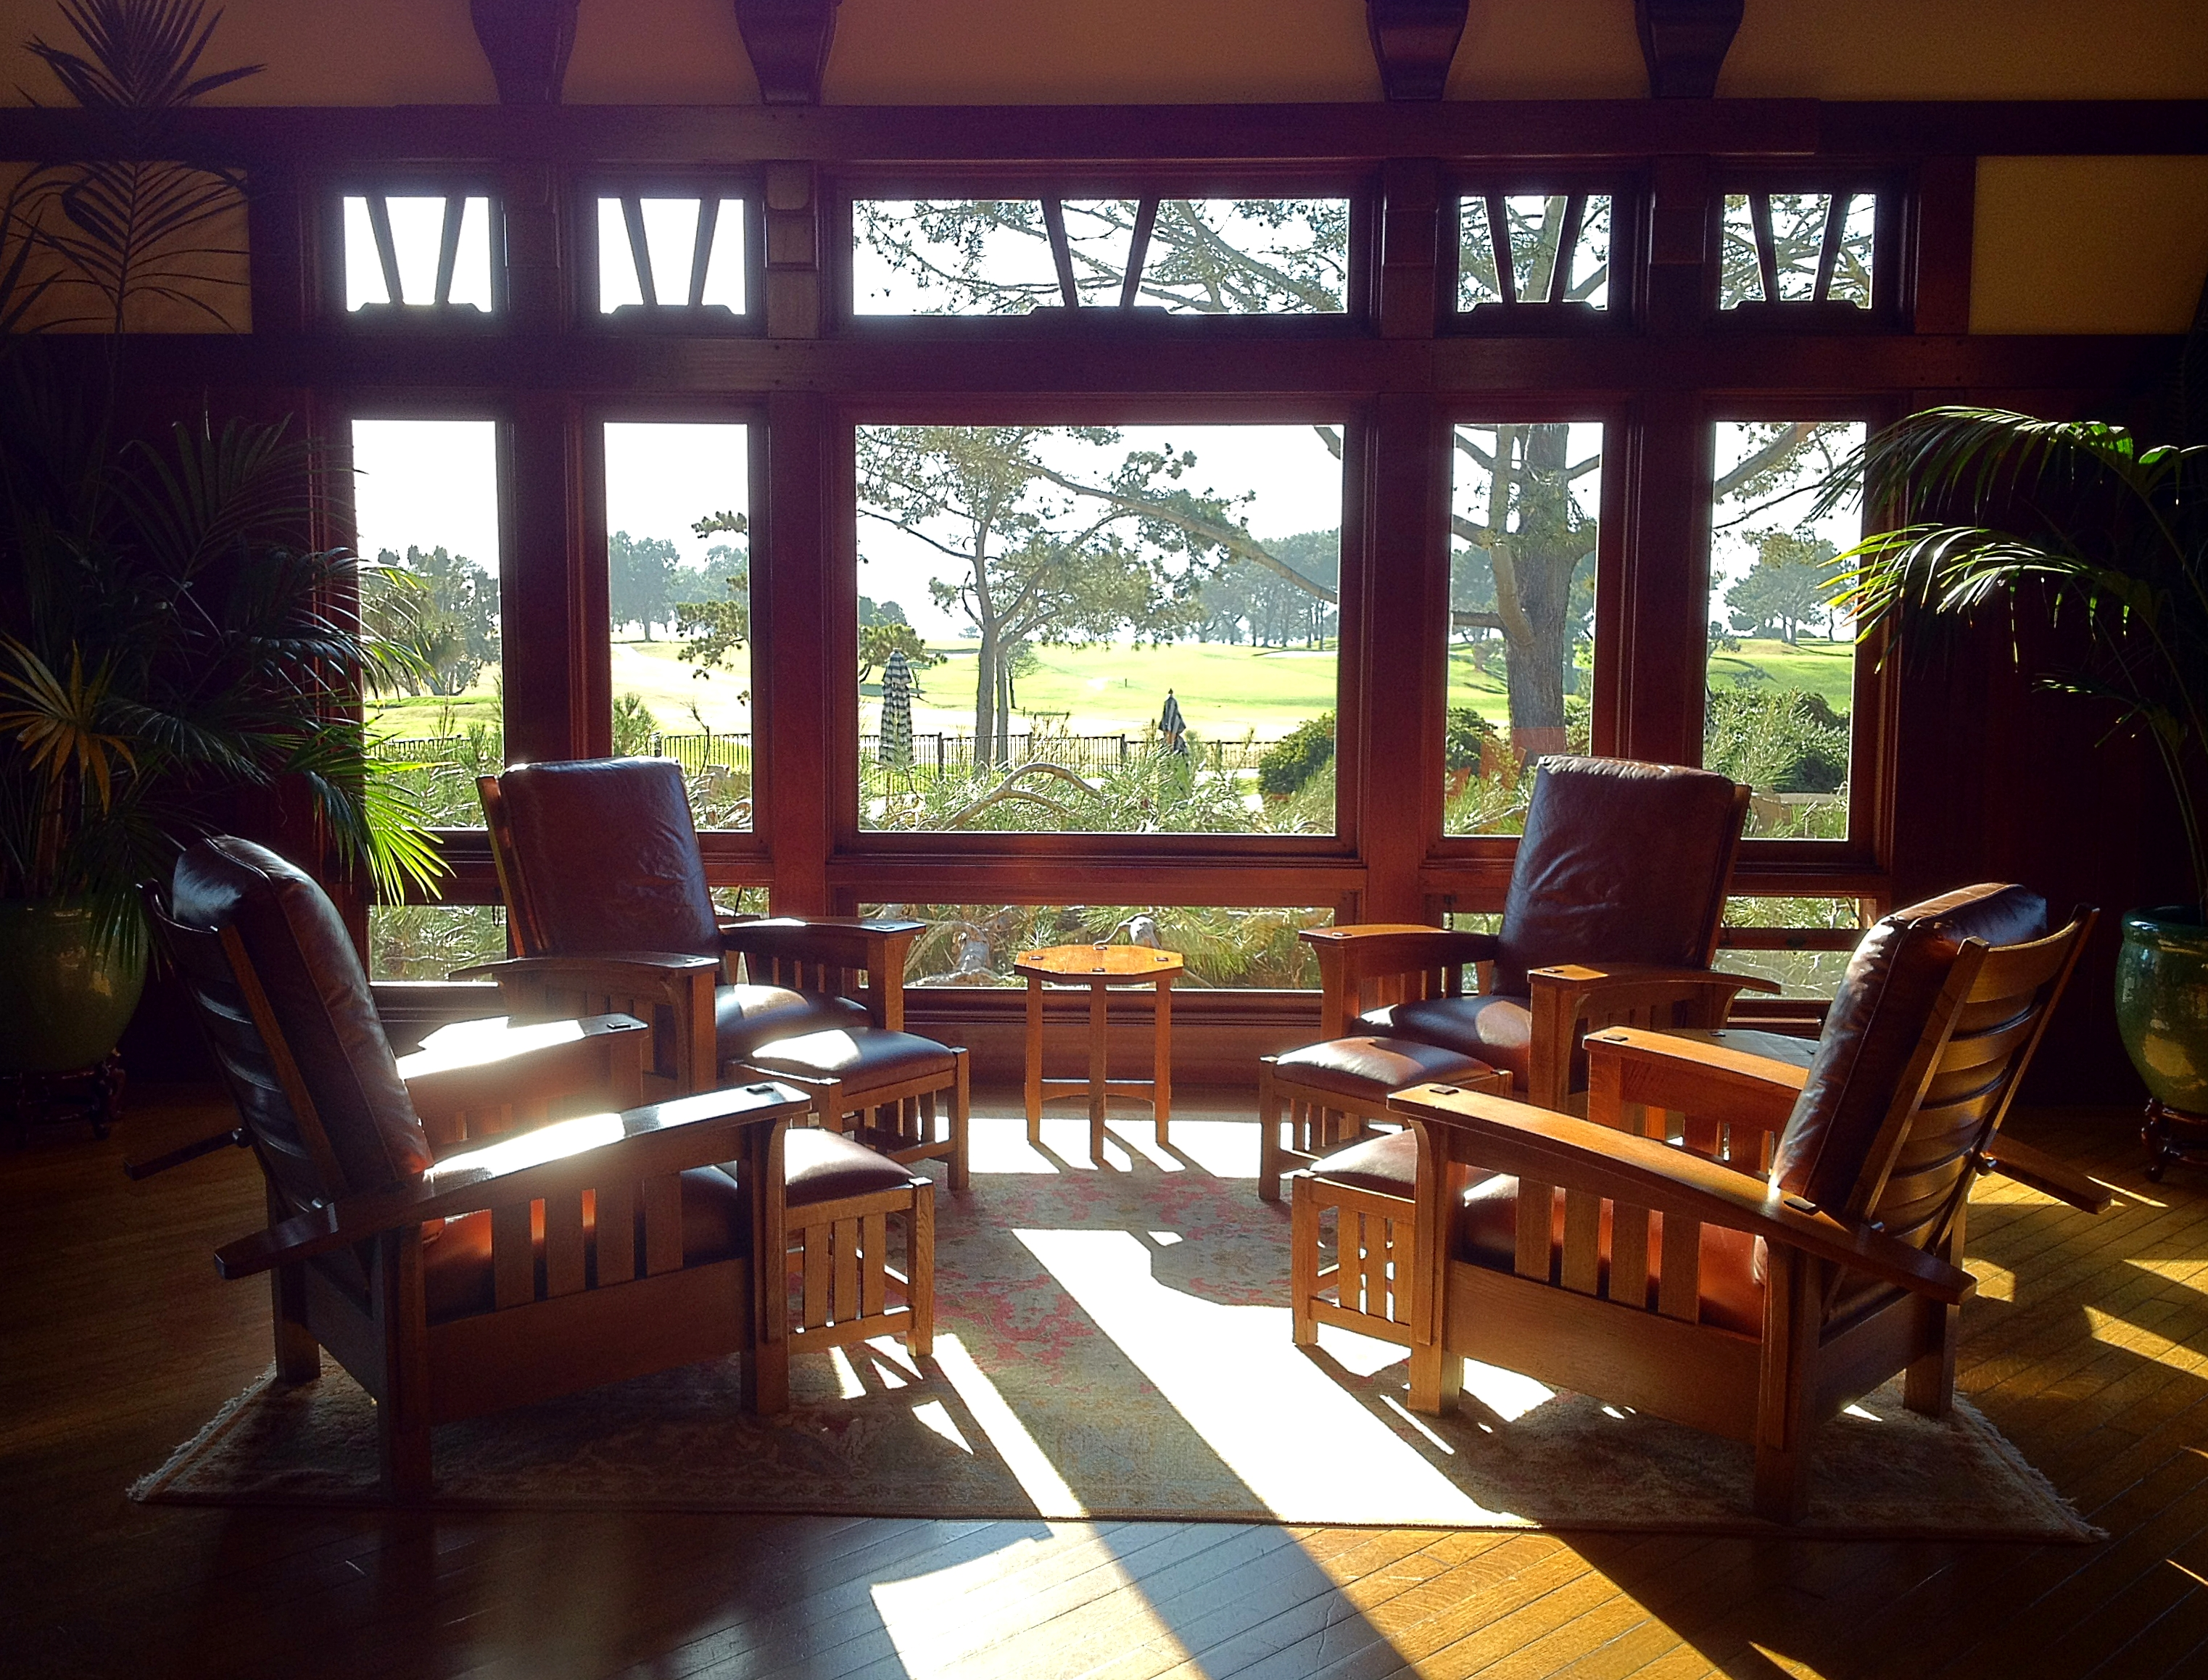 The Lodge At Torrey Pines An Architectural Homage To